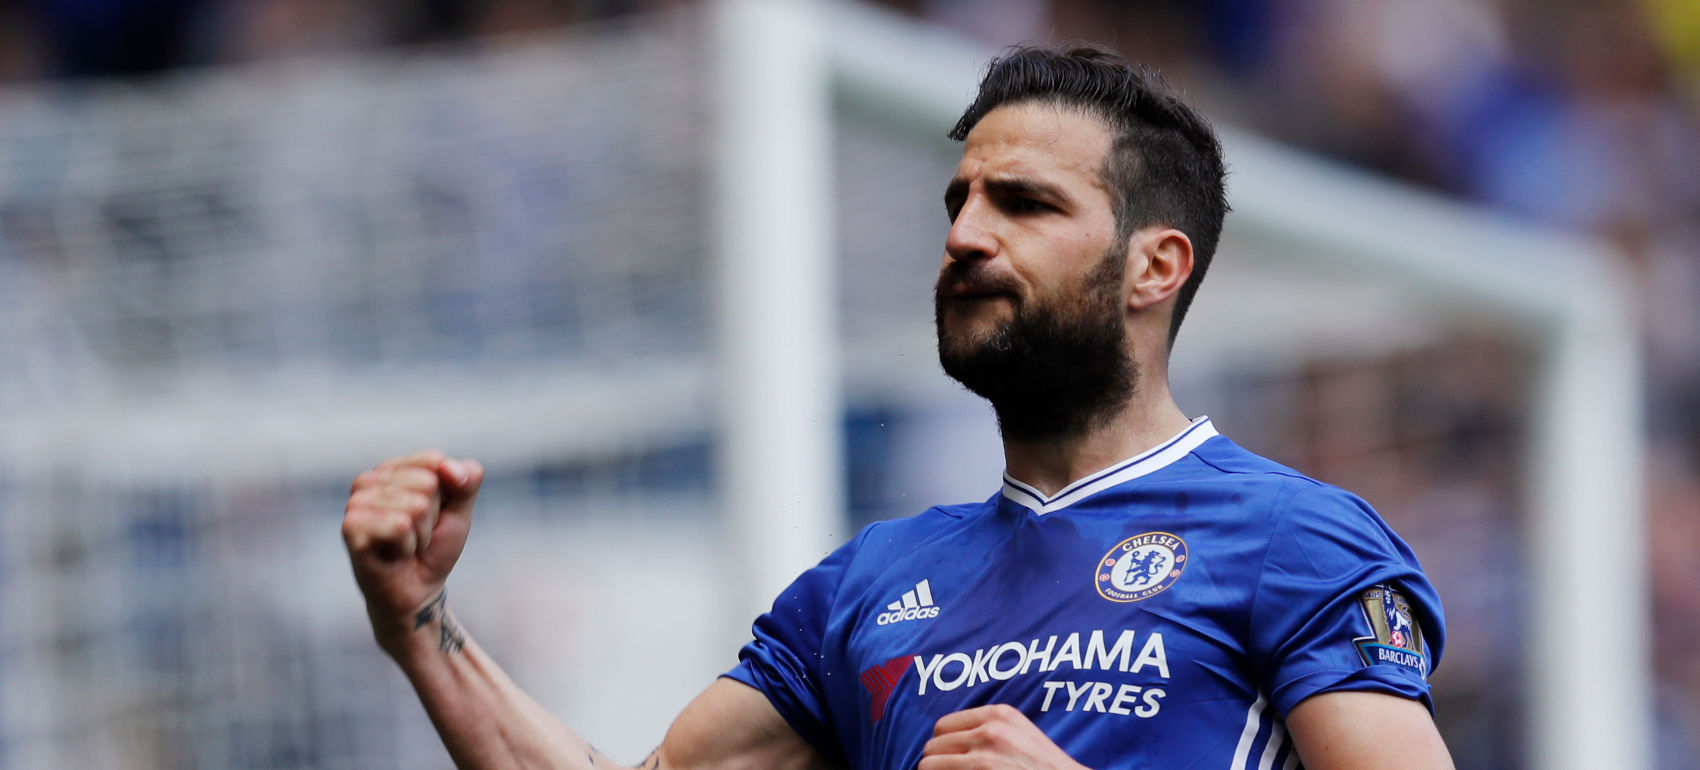 → Which budget midfielder, who had a starting price of £5.5m, banked 12 FPL assists in 2014/15, a total that only Cesc Fàbregas beat?